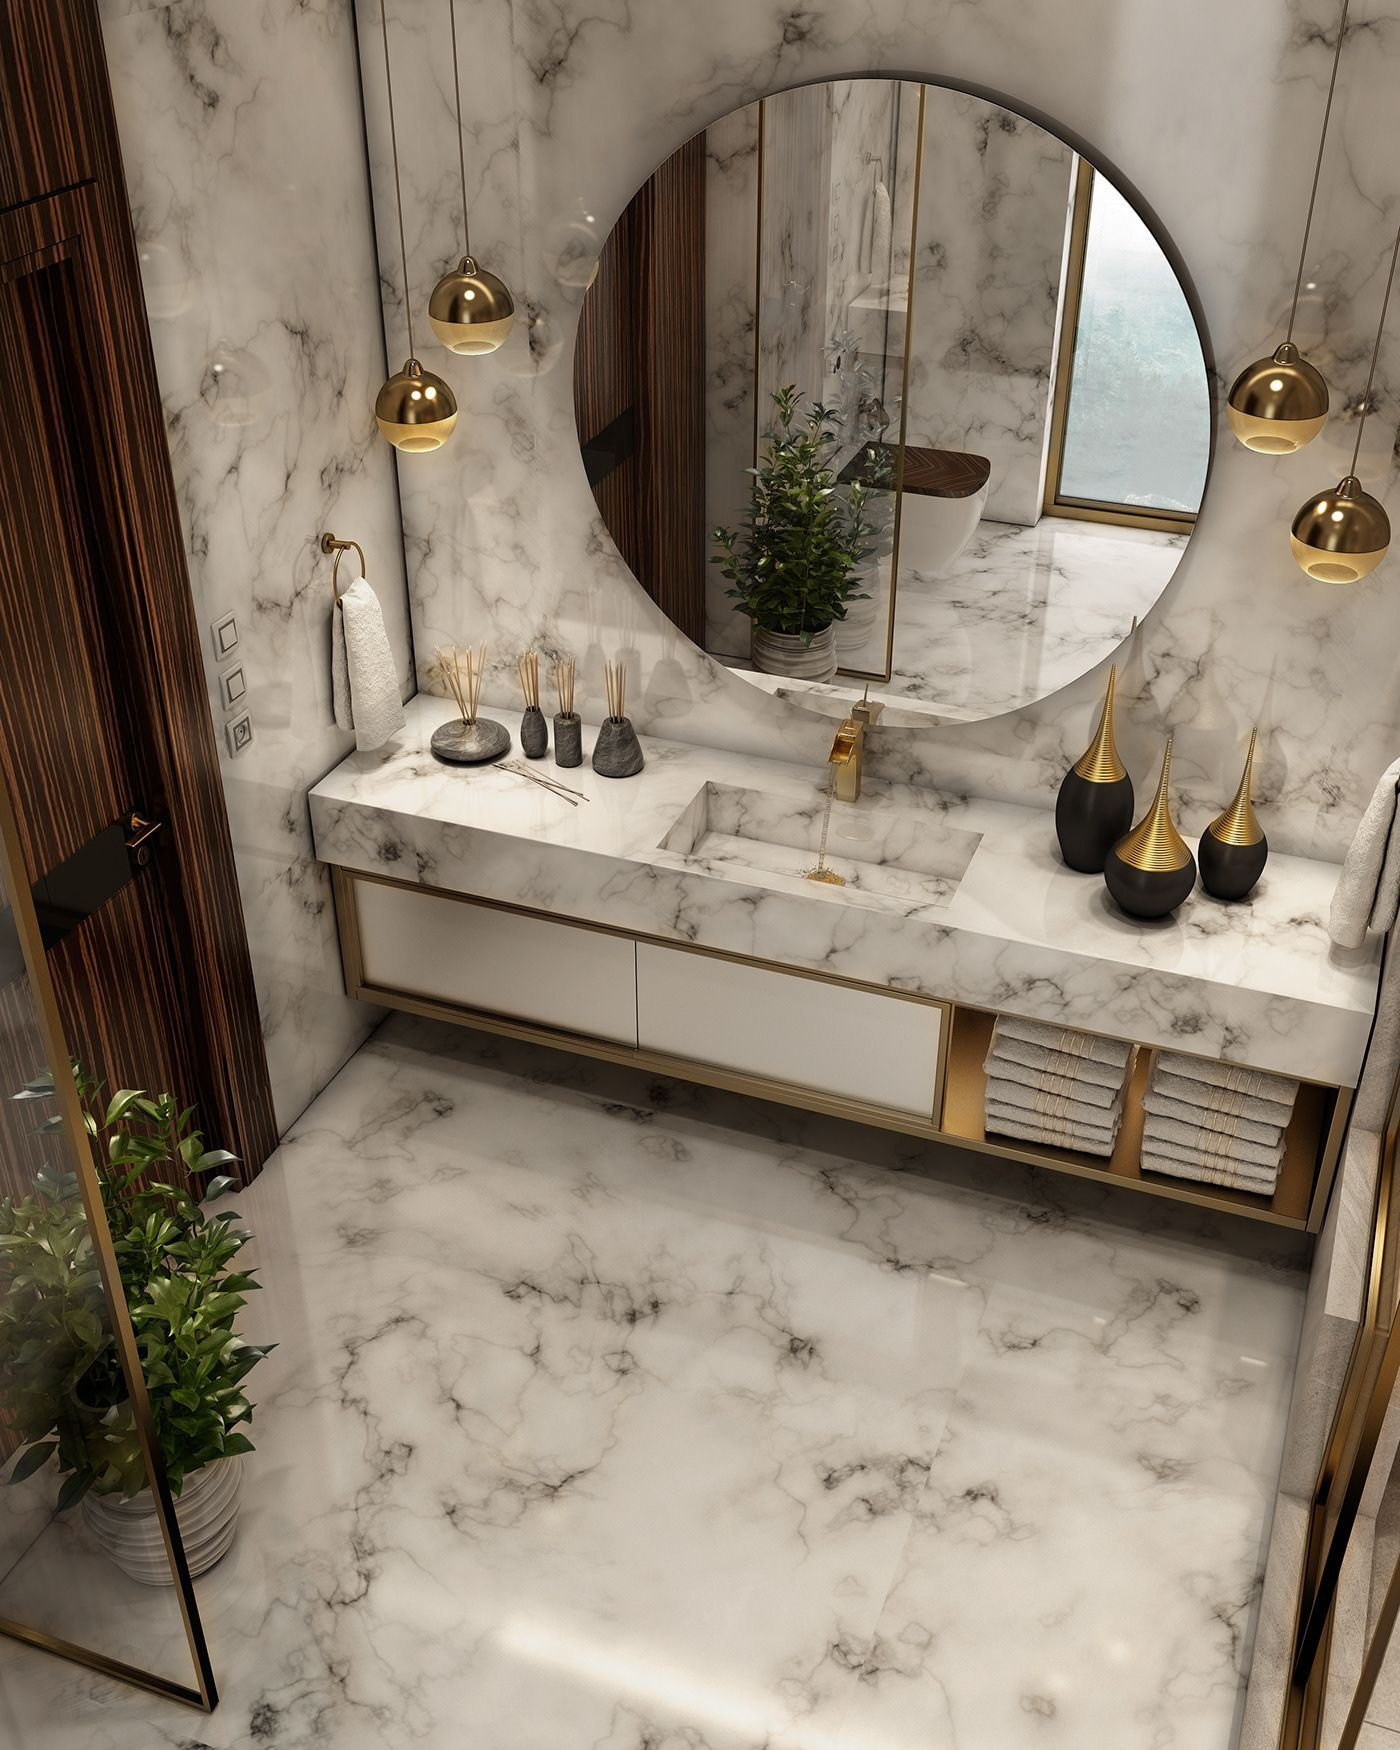 Fresh Contemporary And Luxury Bathroom Design Ideas For Your Home See More Clicking On Simple Bathroom Remodel Bathroom Design Luxury Bathroom Interior Design